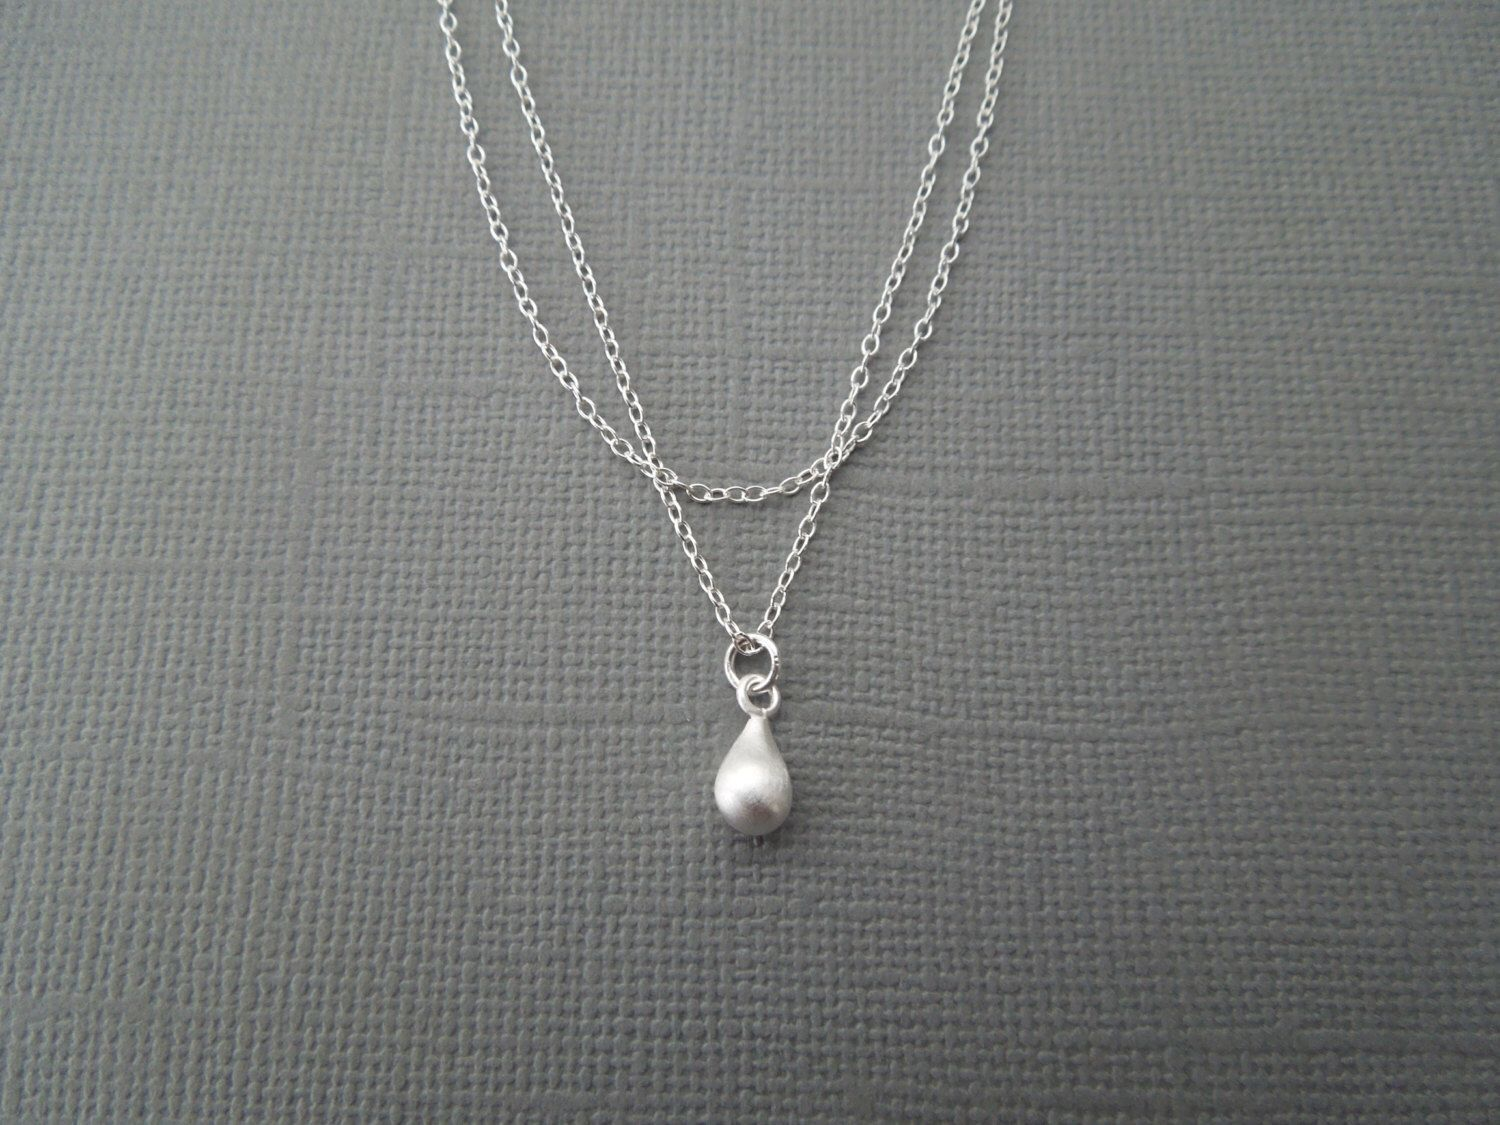 double strand necklace, matte teardrop, small delicate bridesmaids, wedding everyday layered by greygoosegifts on Etsy https://www.etsy.com/listing/171669465/double-strand-necklace-matte-teardrop